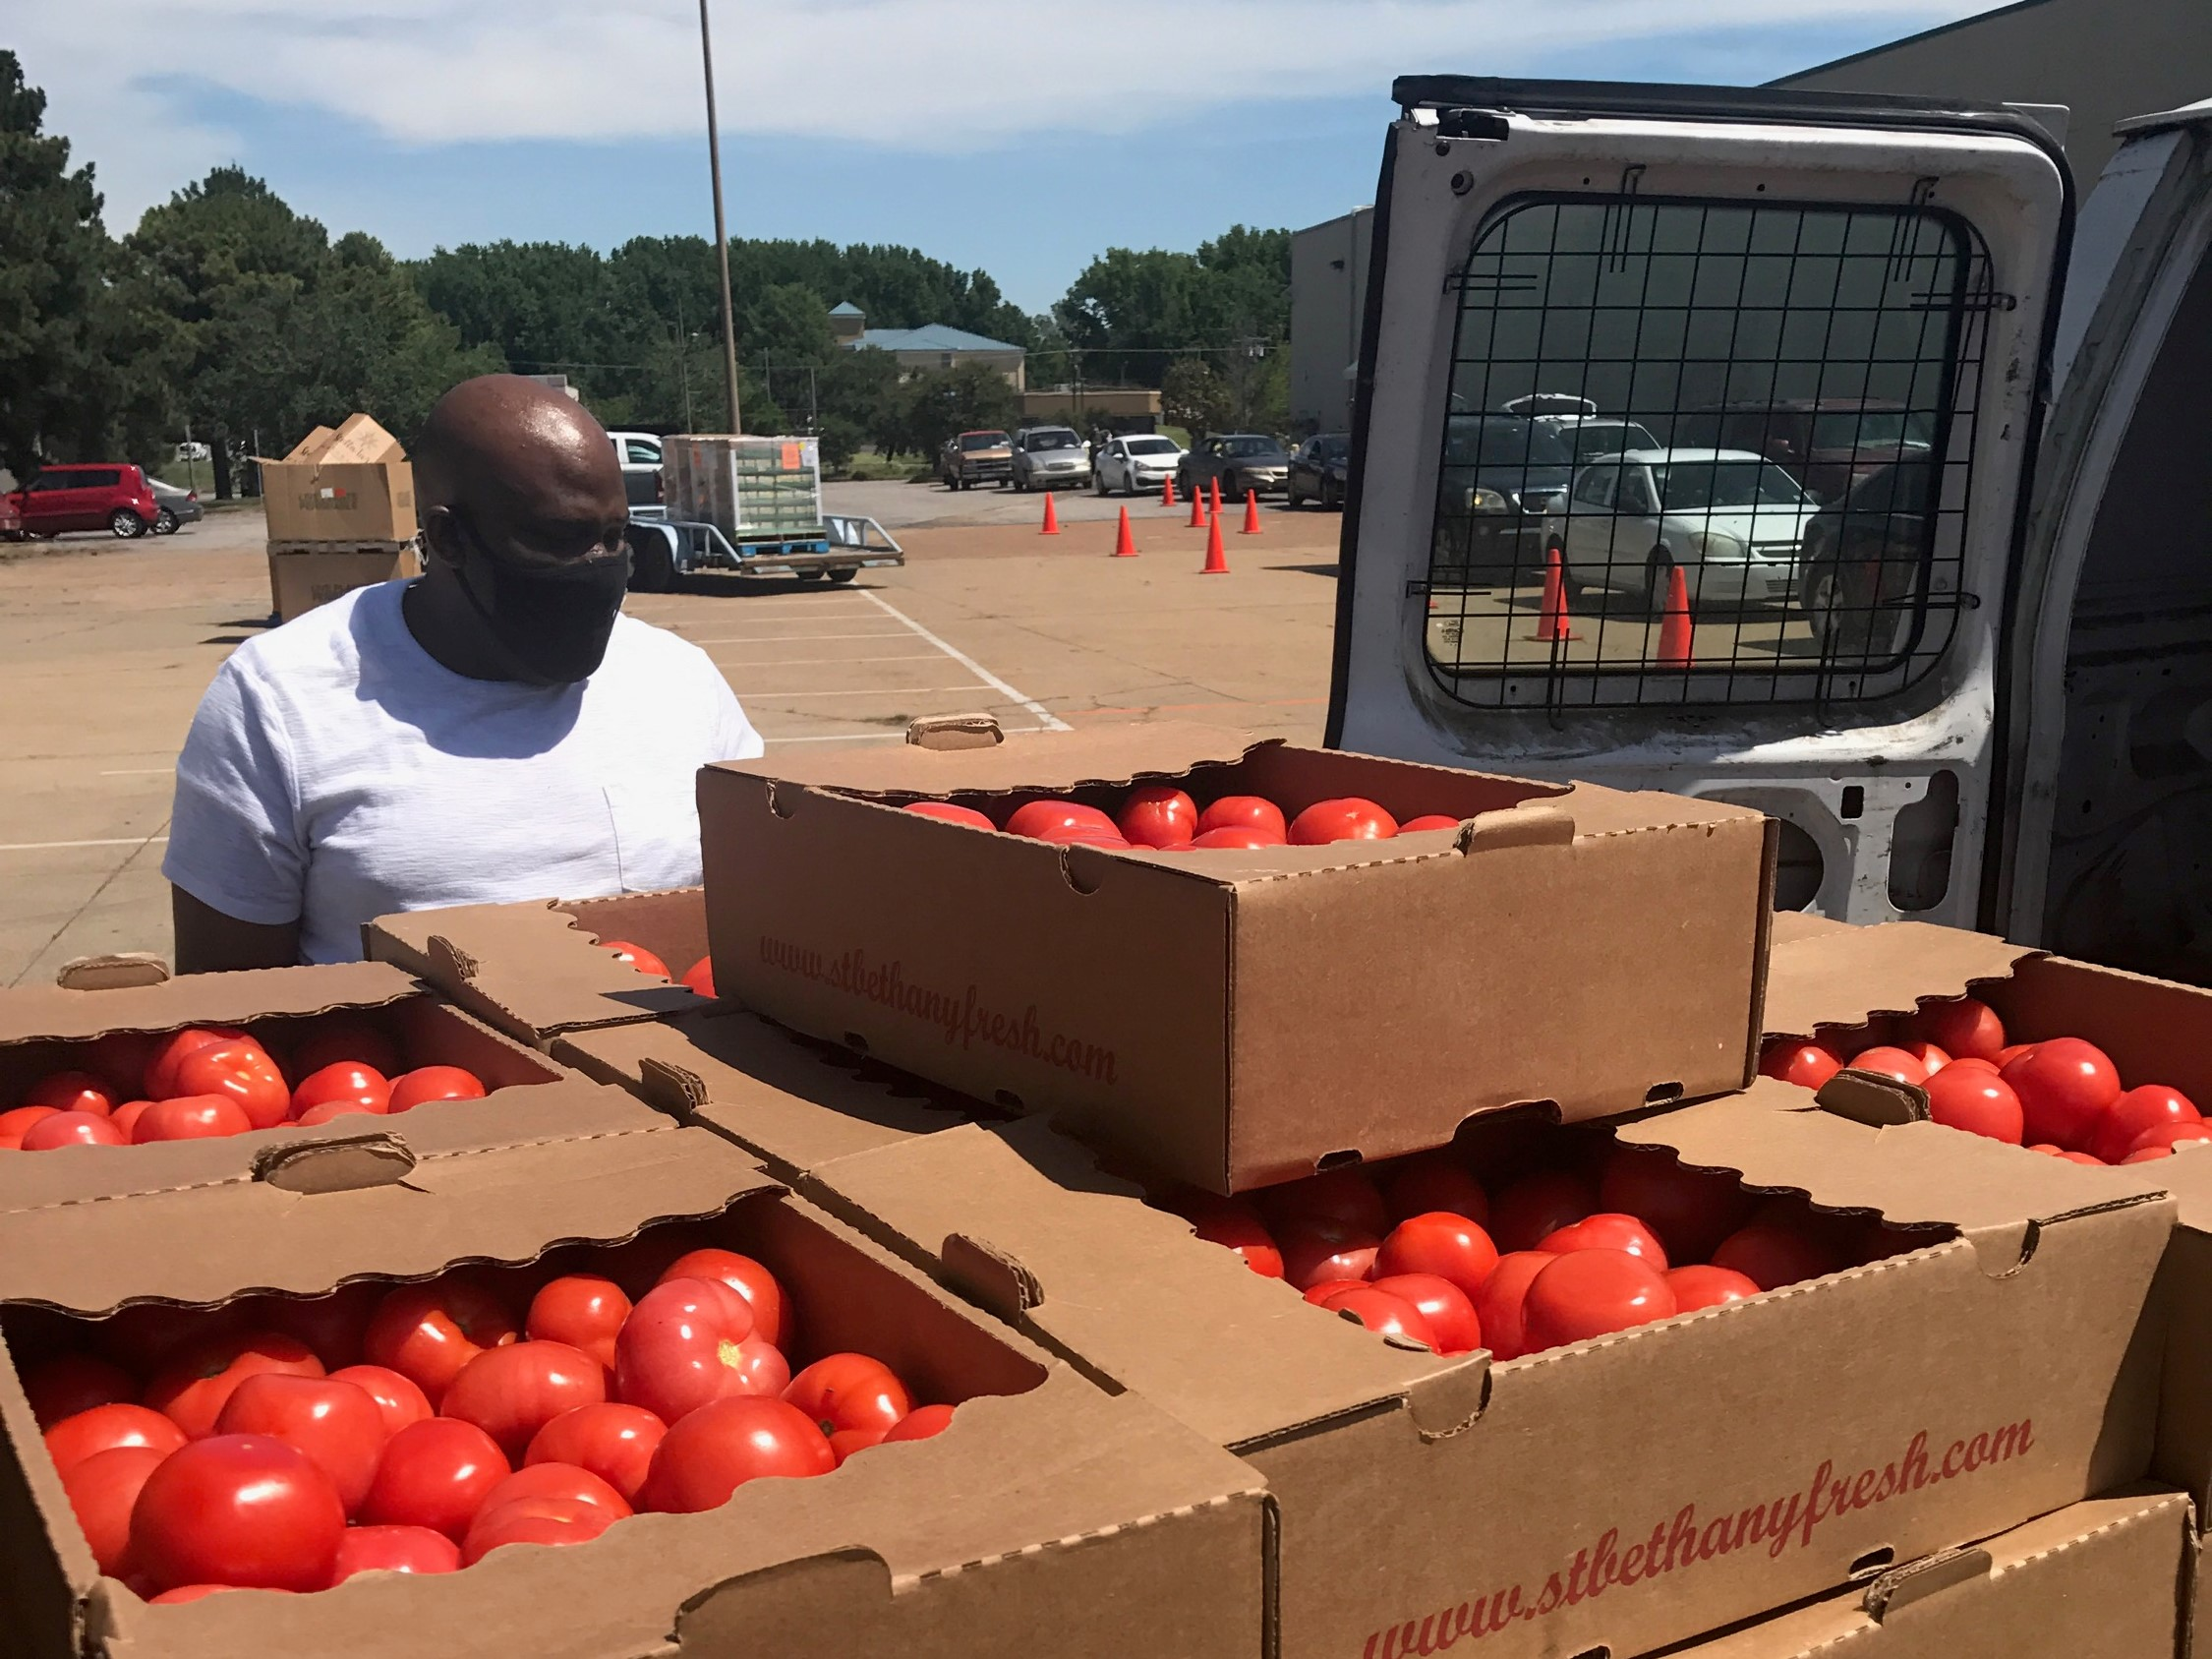 Delivery of fresh tomatoes